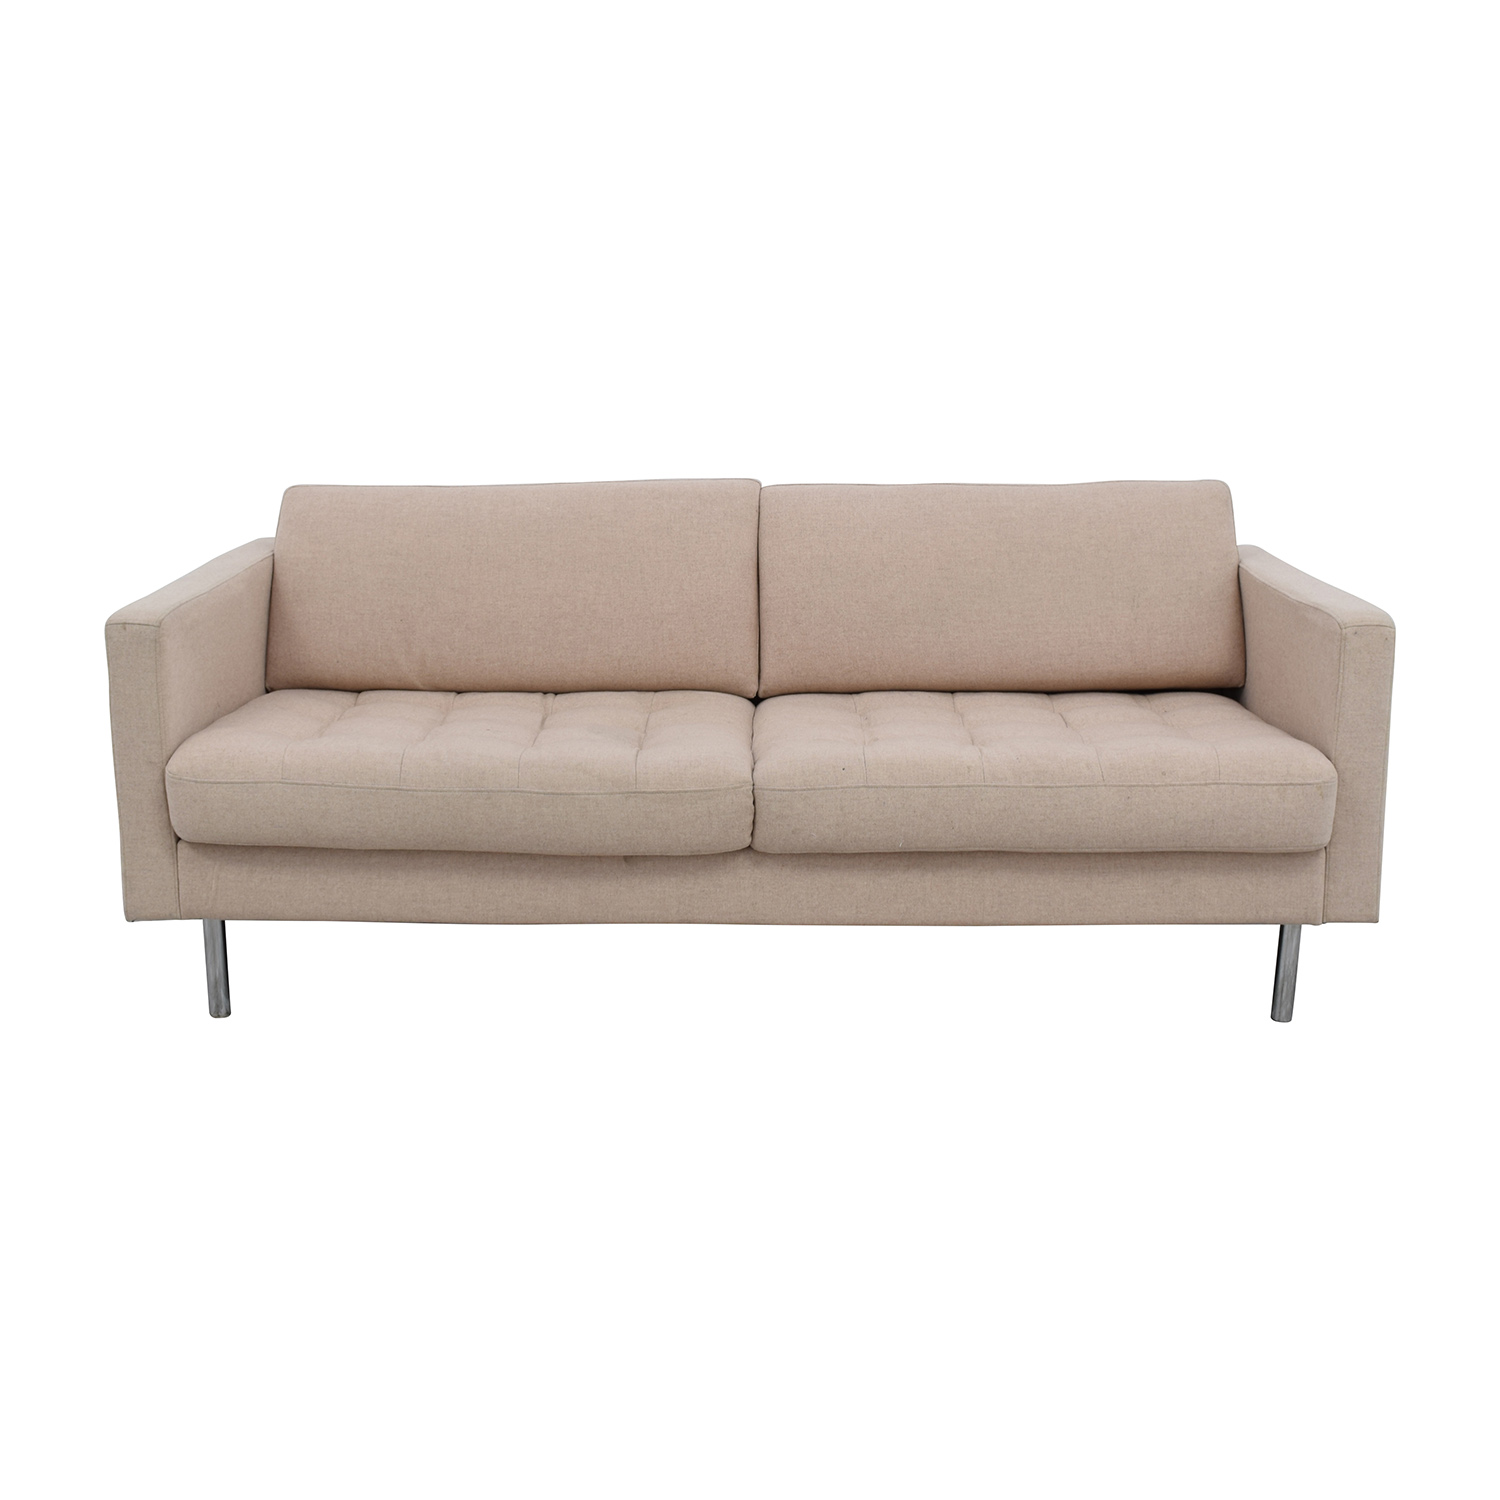 BoConcept BoConcept Carmo Sand Two Tufted Cushion Sofa Beige ...